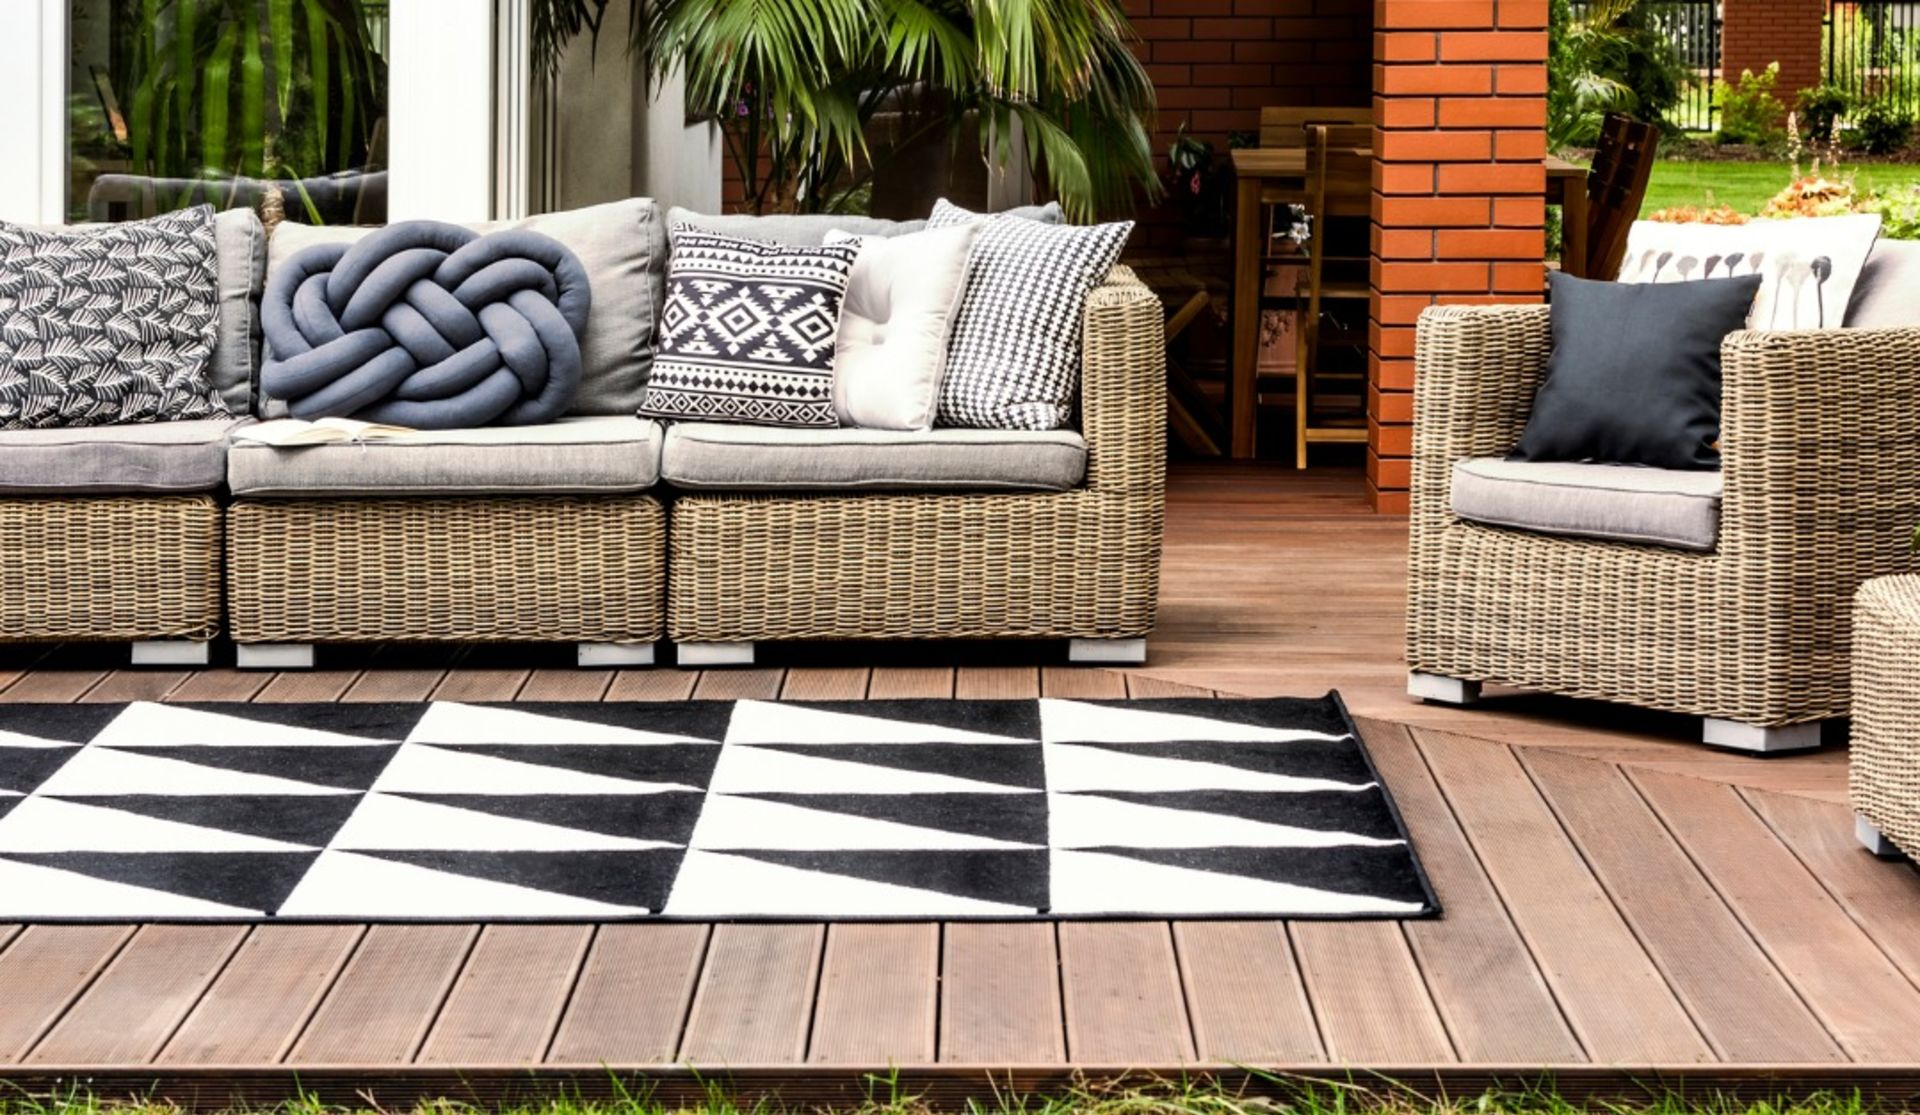 Design your Outdoors